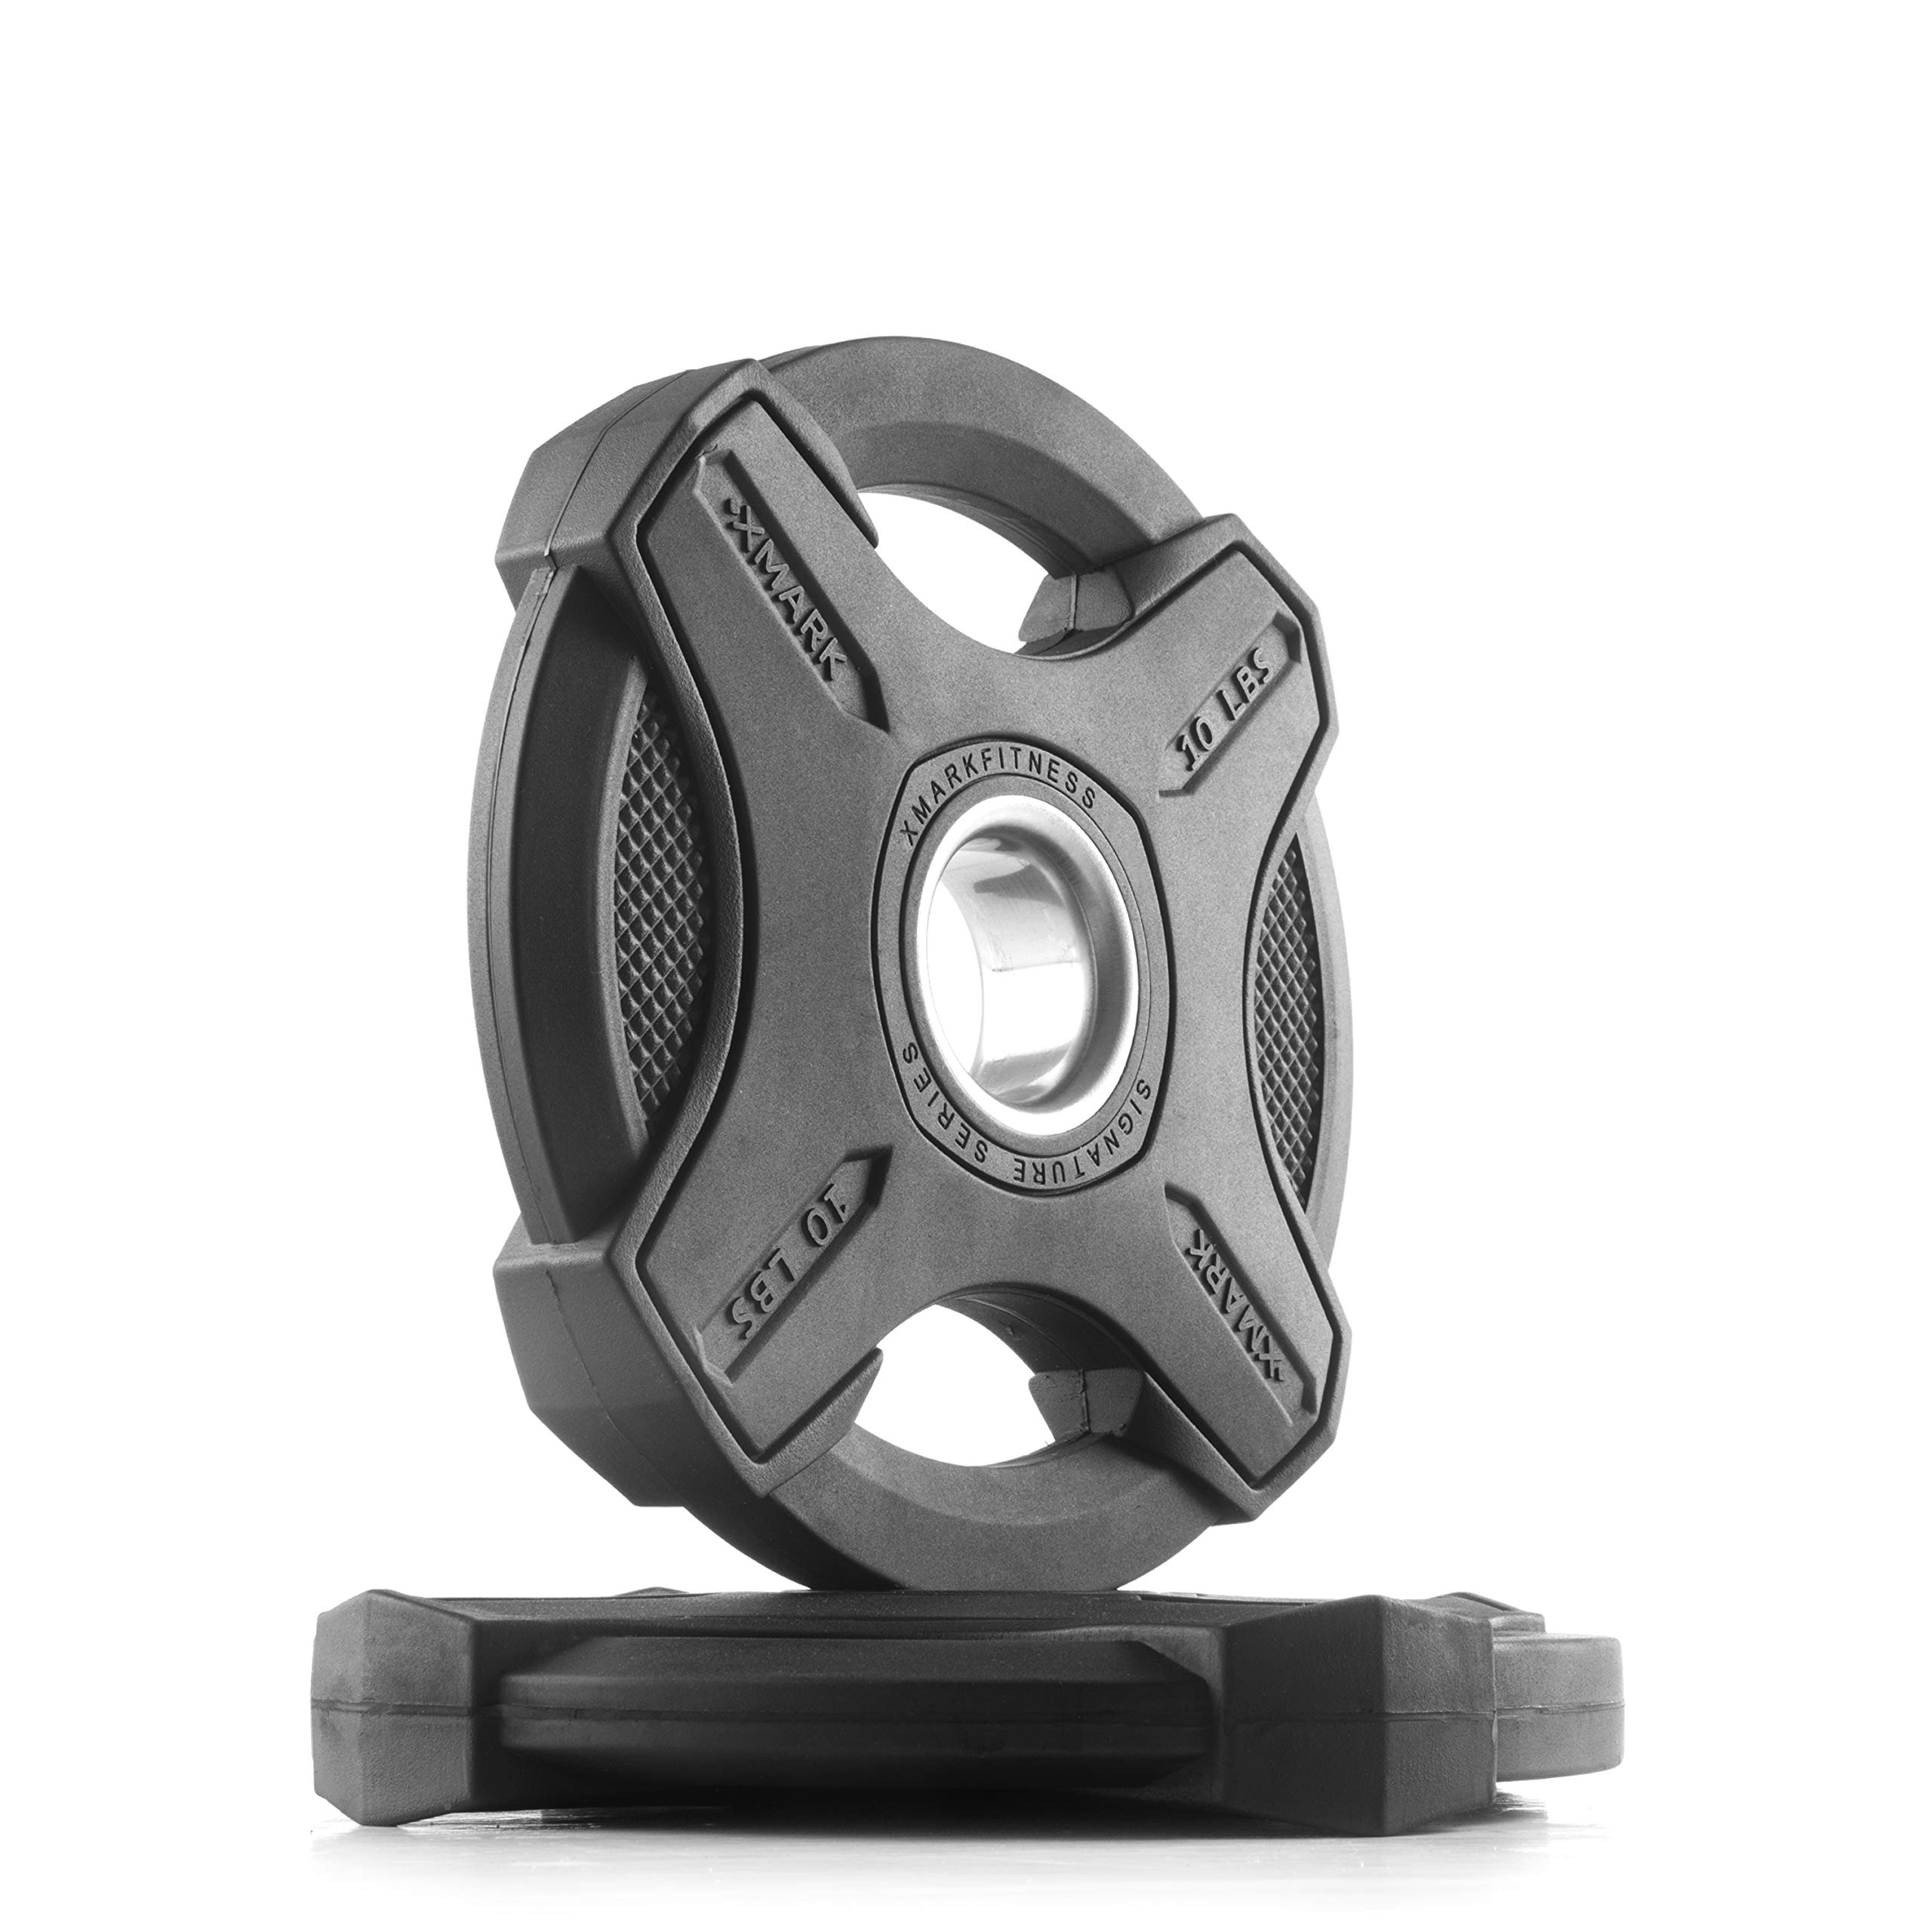 XMark 10 lb Pair Signature Plates, One-Year Warranty, Olympic Weight Plates, Cutting-Edge Design